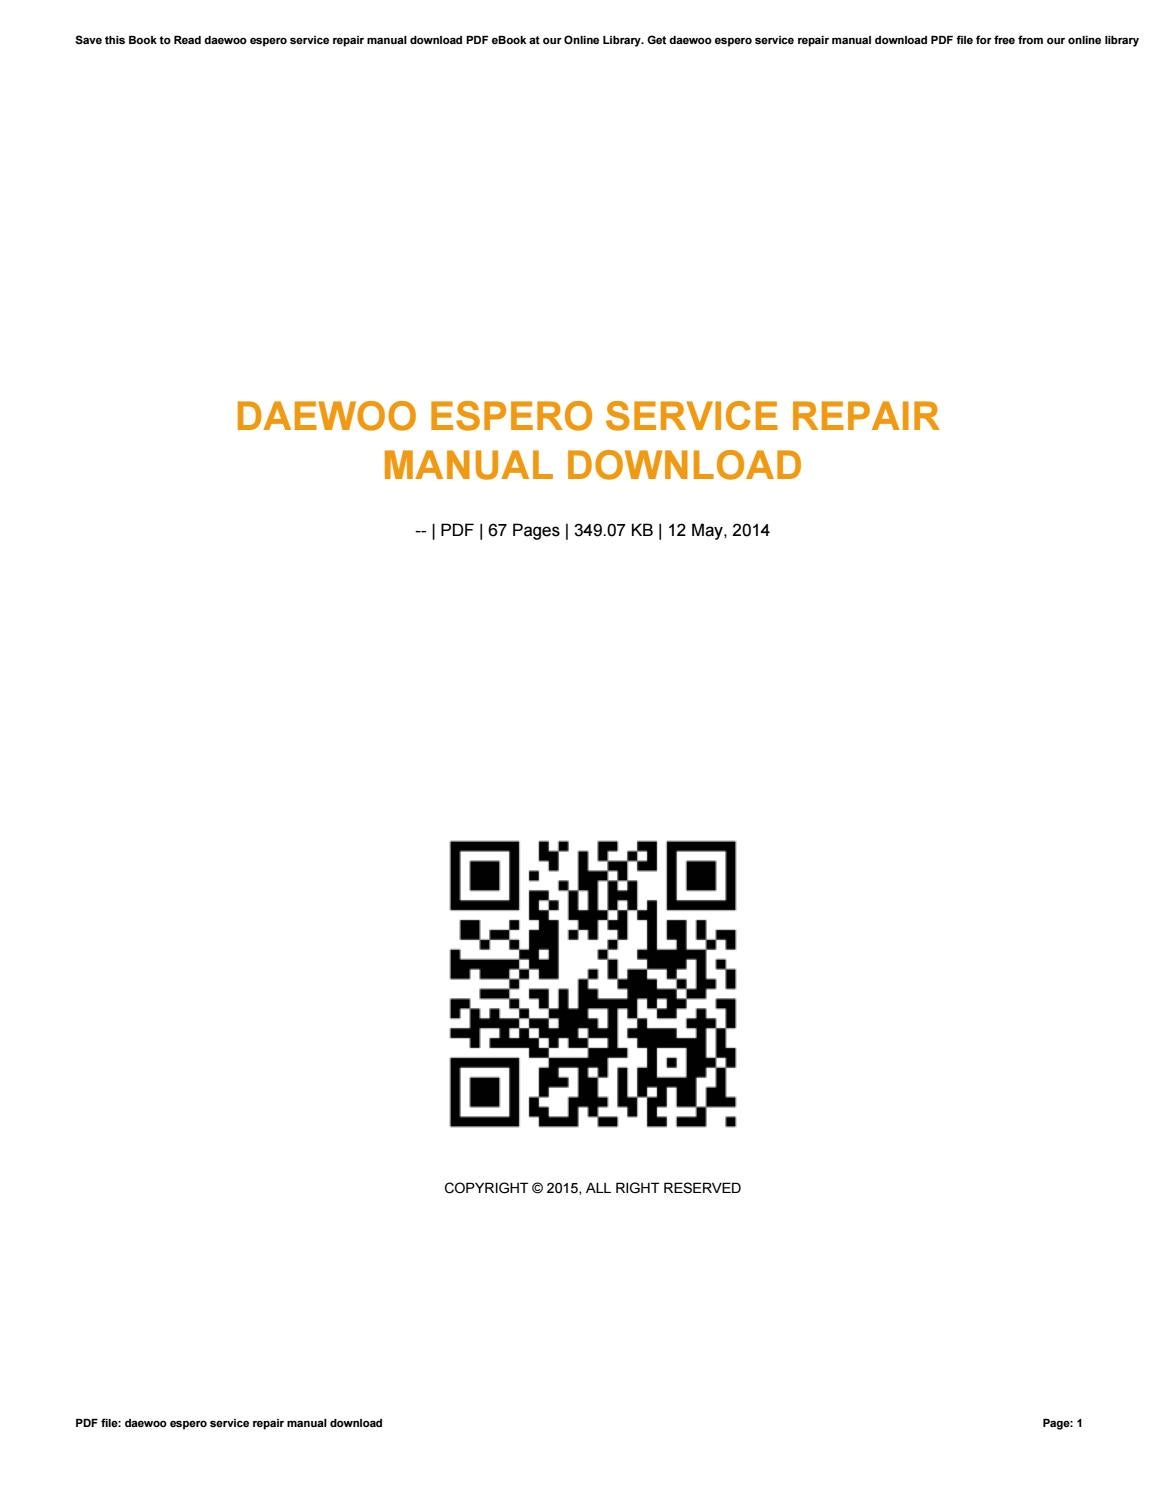 Daewoo espero service repair manual download by inclusiveprogress1 - issuu